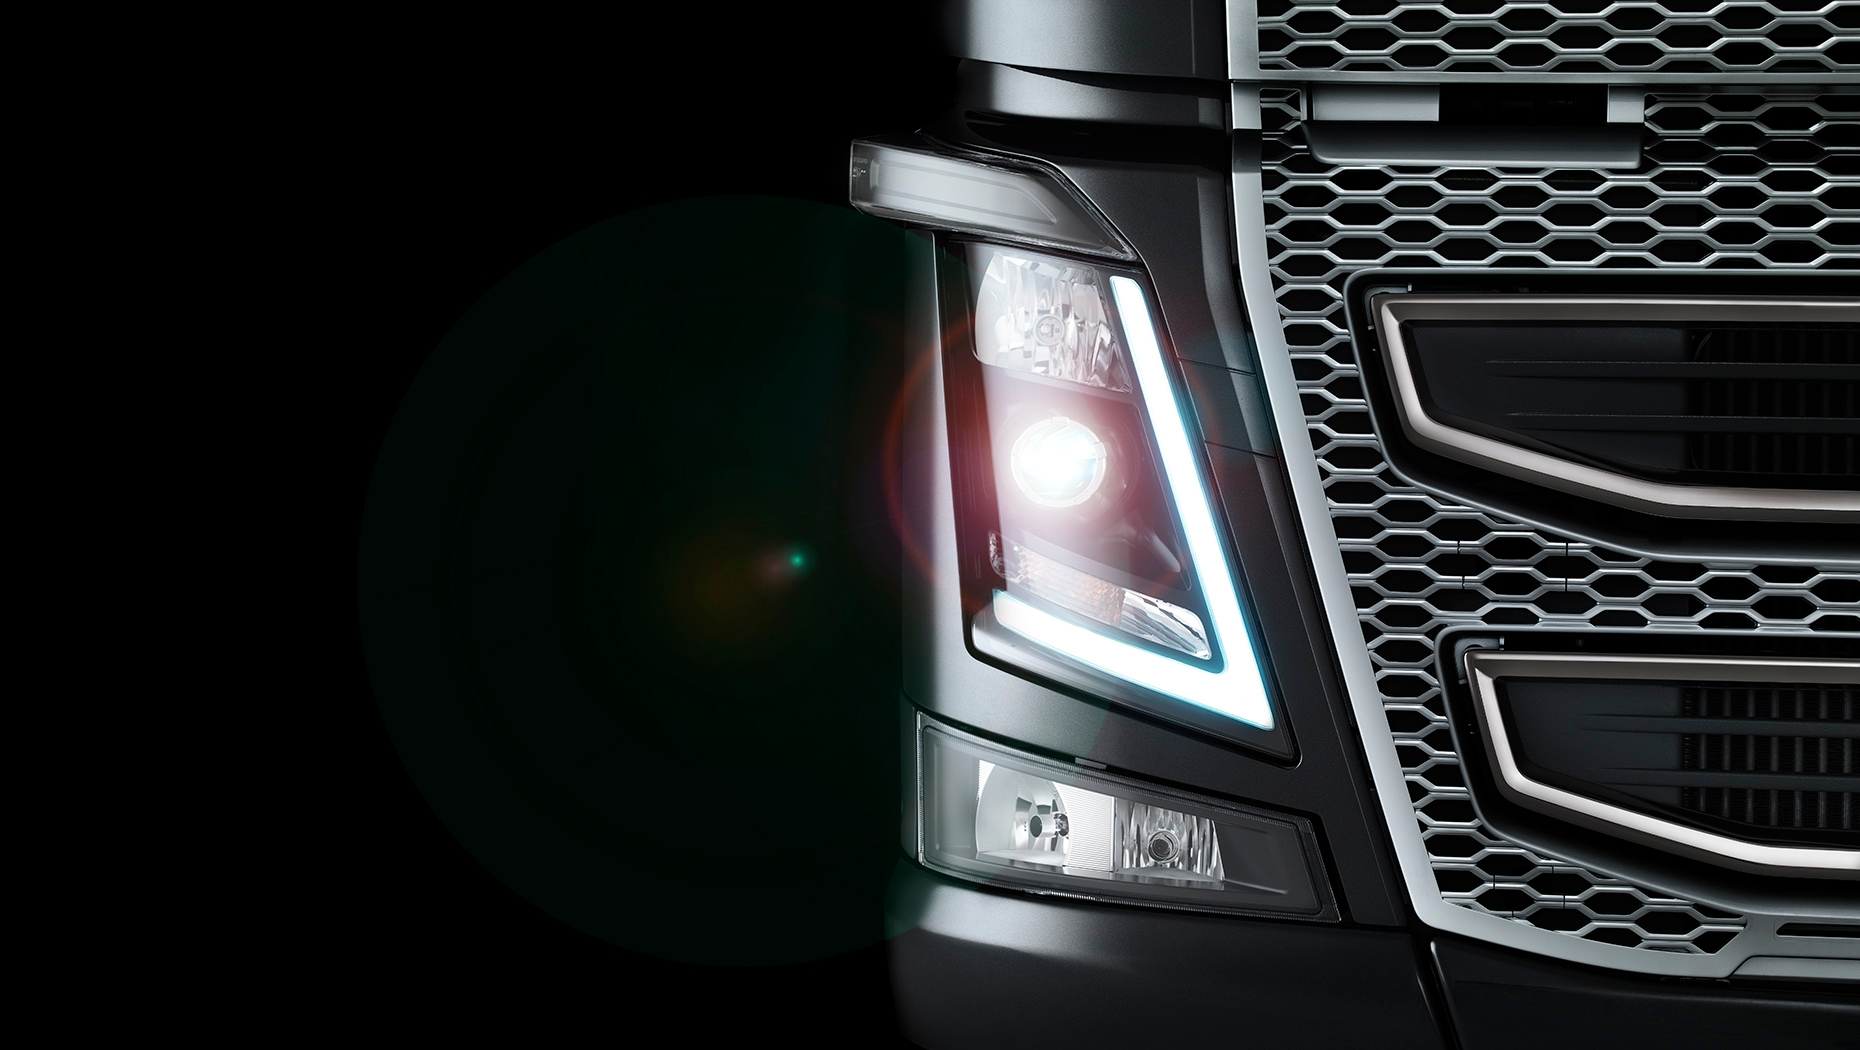 The iconic design of Volvo Trucks' headlights was directly inspired by the look and feel of hard ice.